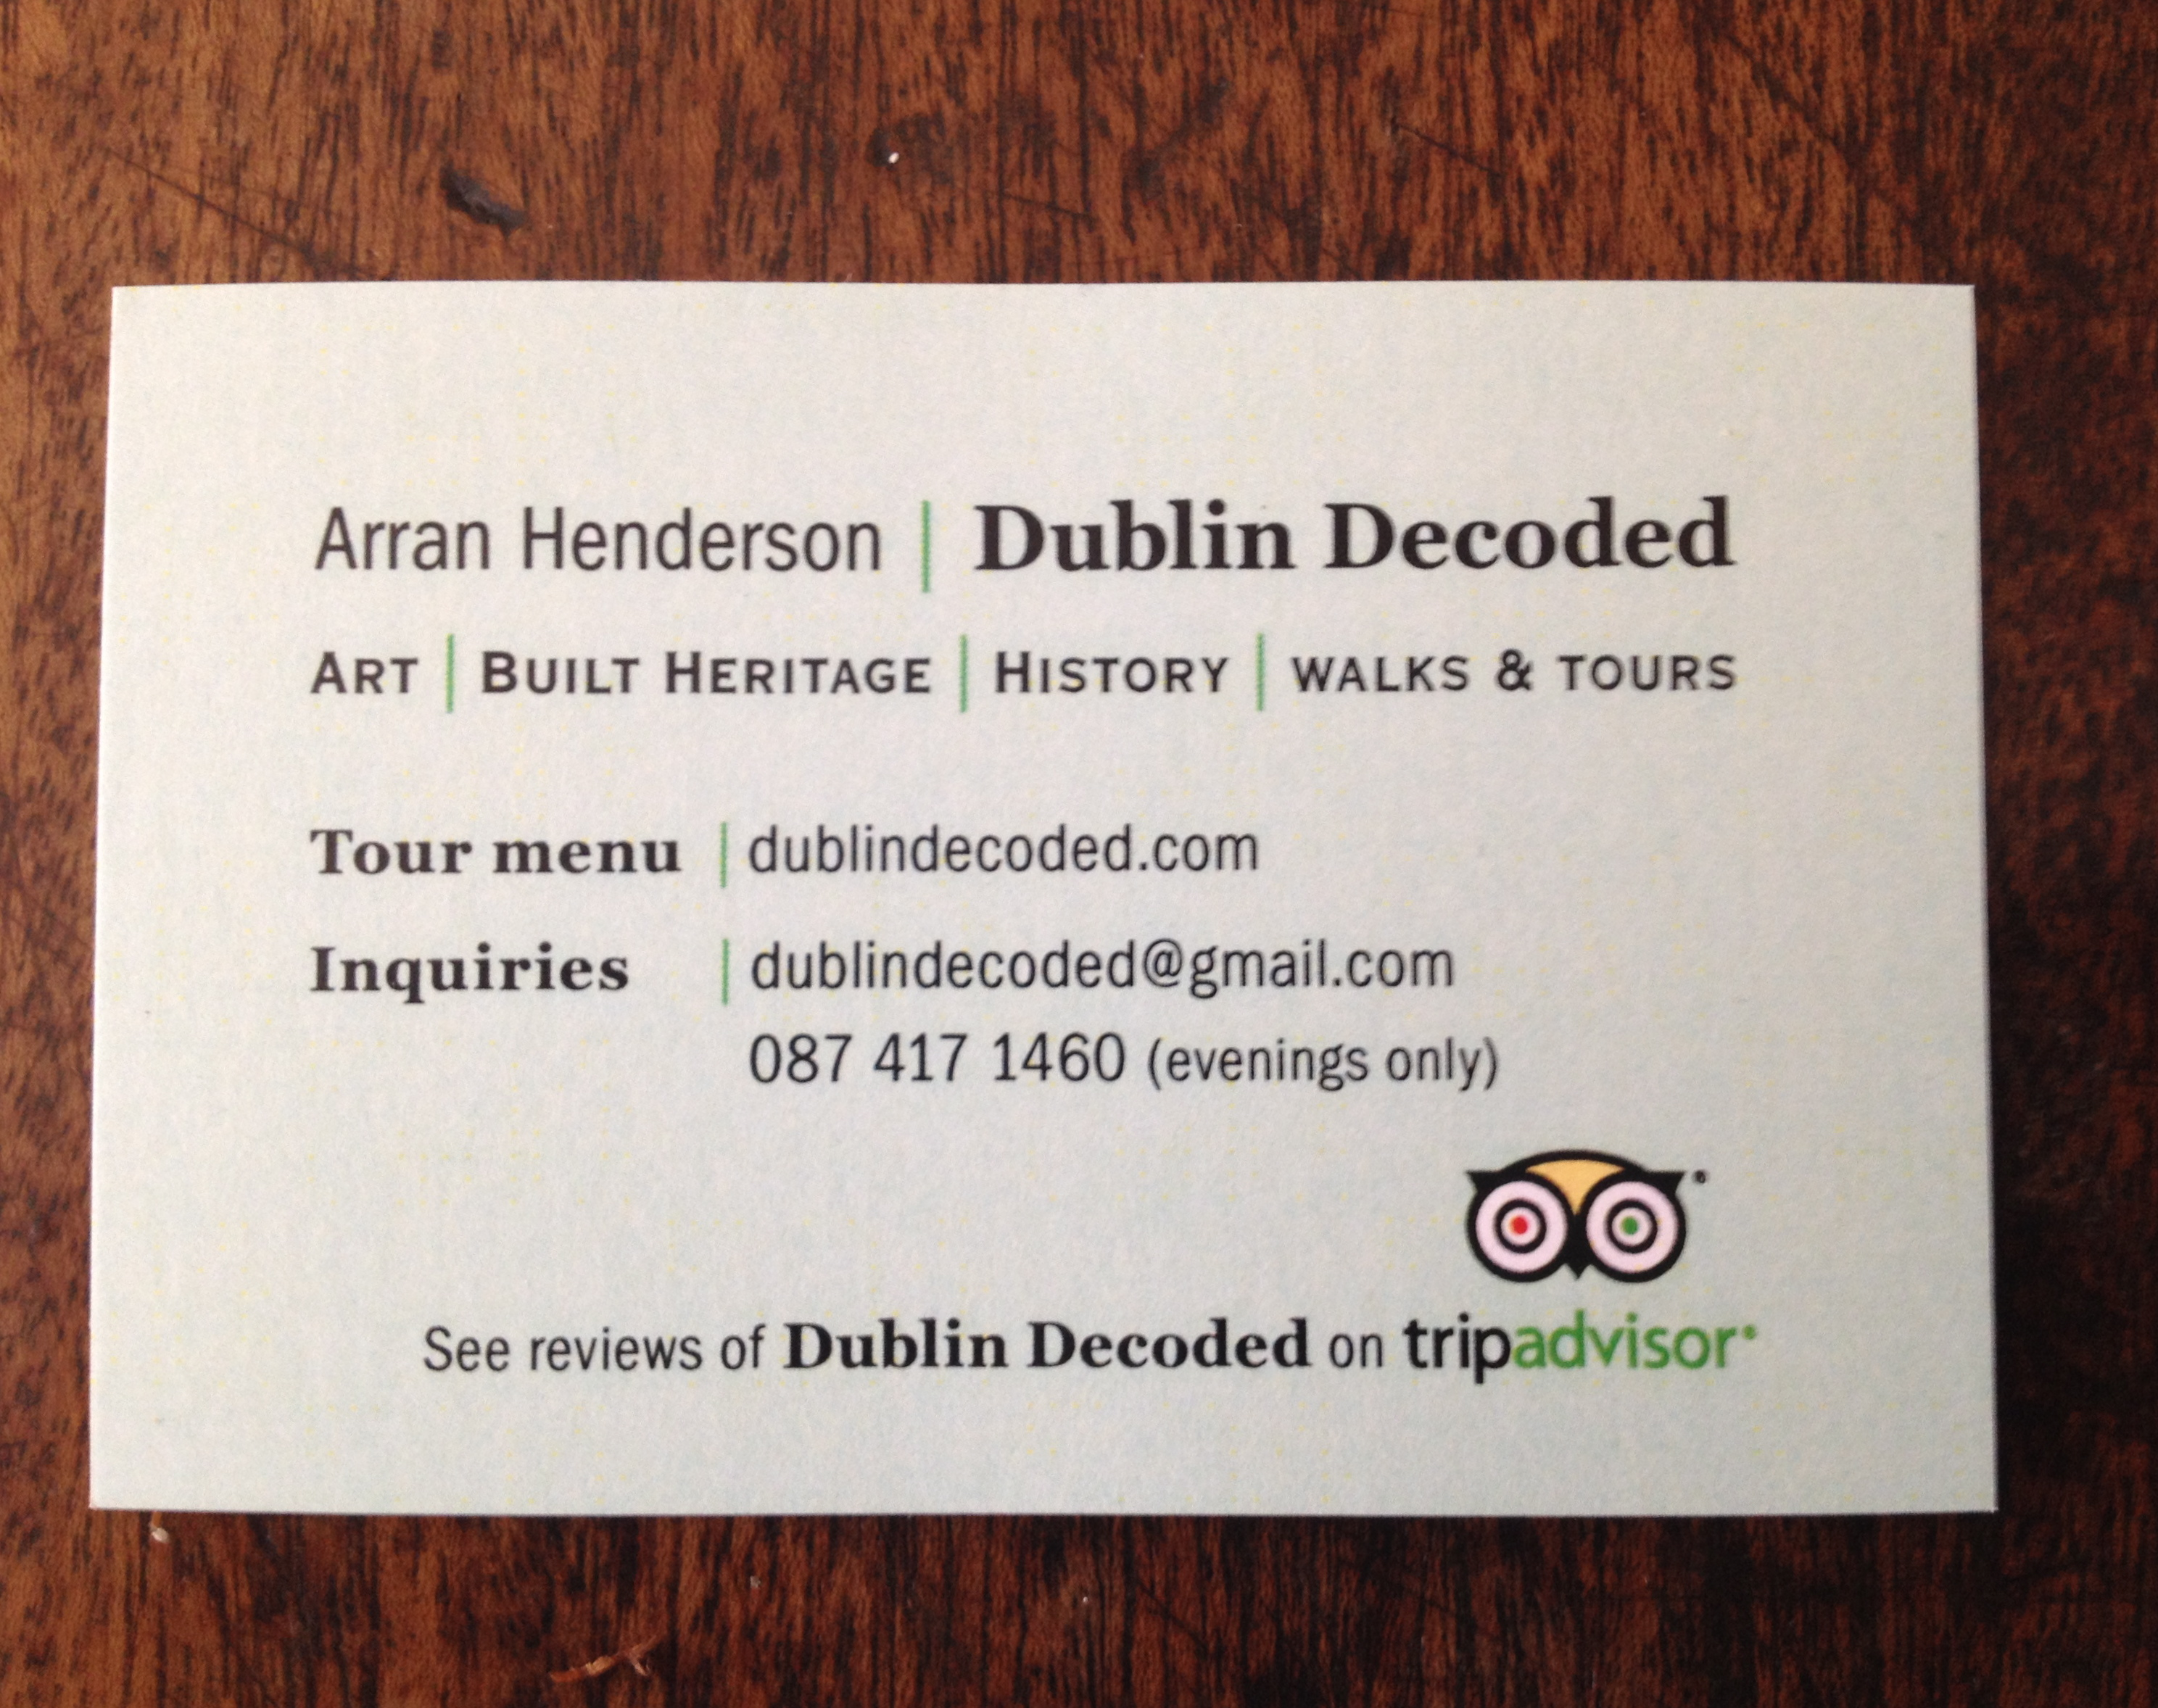 Business Cards Ireland Dublin Image collections - Card Design And ...